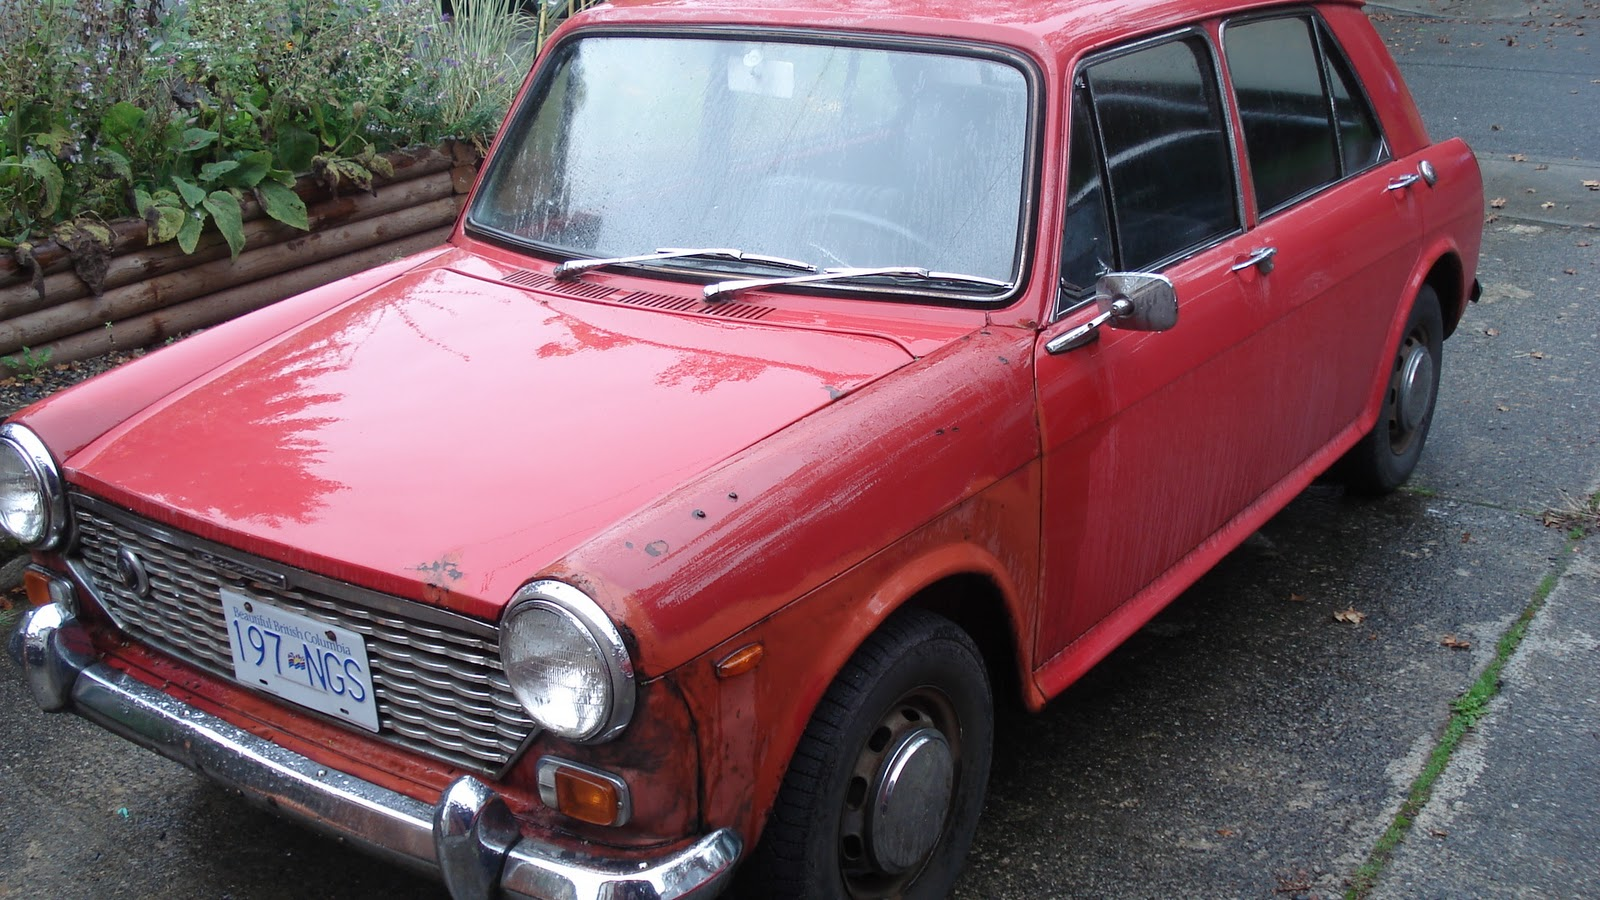 1968 austin 1100 mk ii austin 1100 pictures as it is today for Red barn motors austin